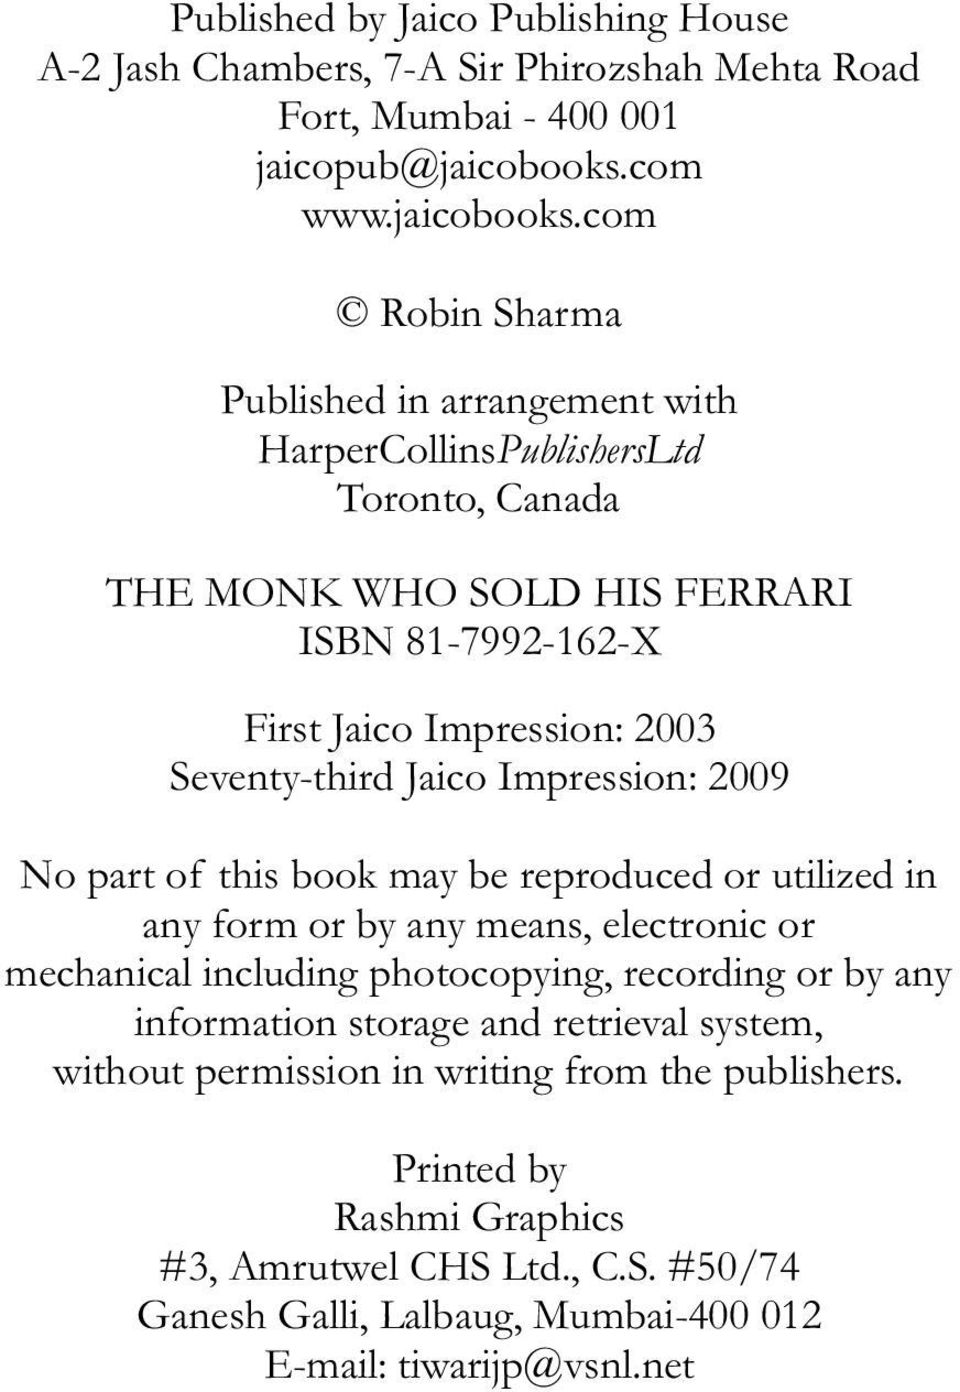 com Robin Sharma Published in arrangement with HarperCollinsPublishersLtd Toronto, Canada THE MONK WHO SOLD HIS FERRARI ISBN 81-7992-162-X First Jaico Impression: 2003